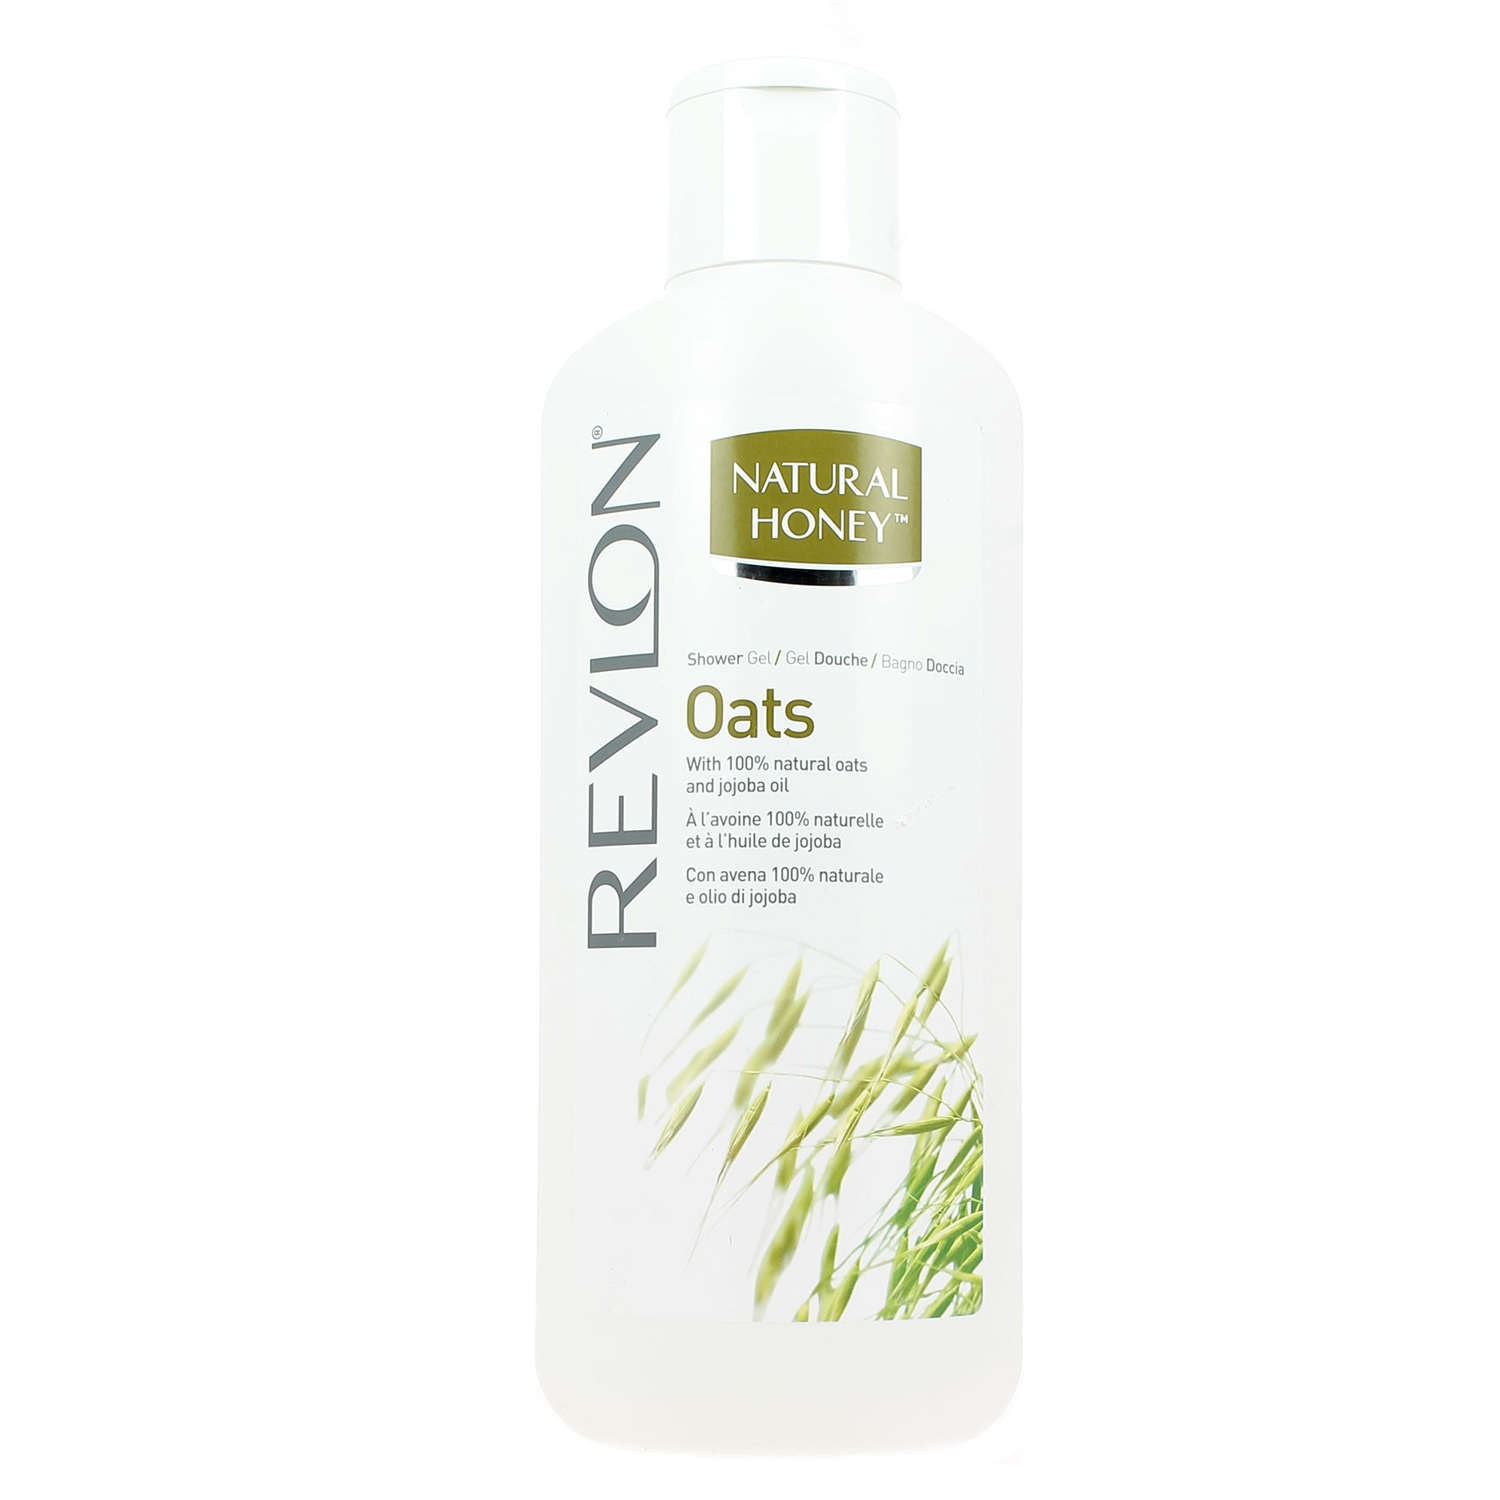 Revlon  Natural honey bagno doccia oats 650 ml